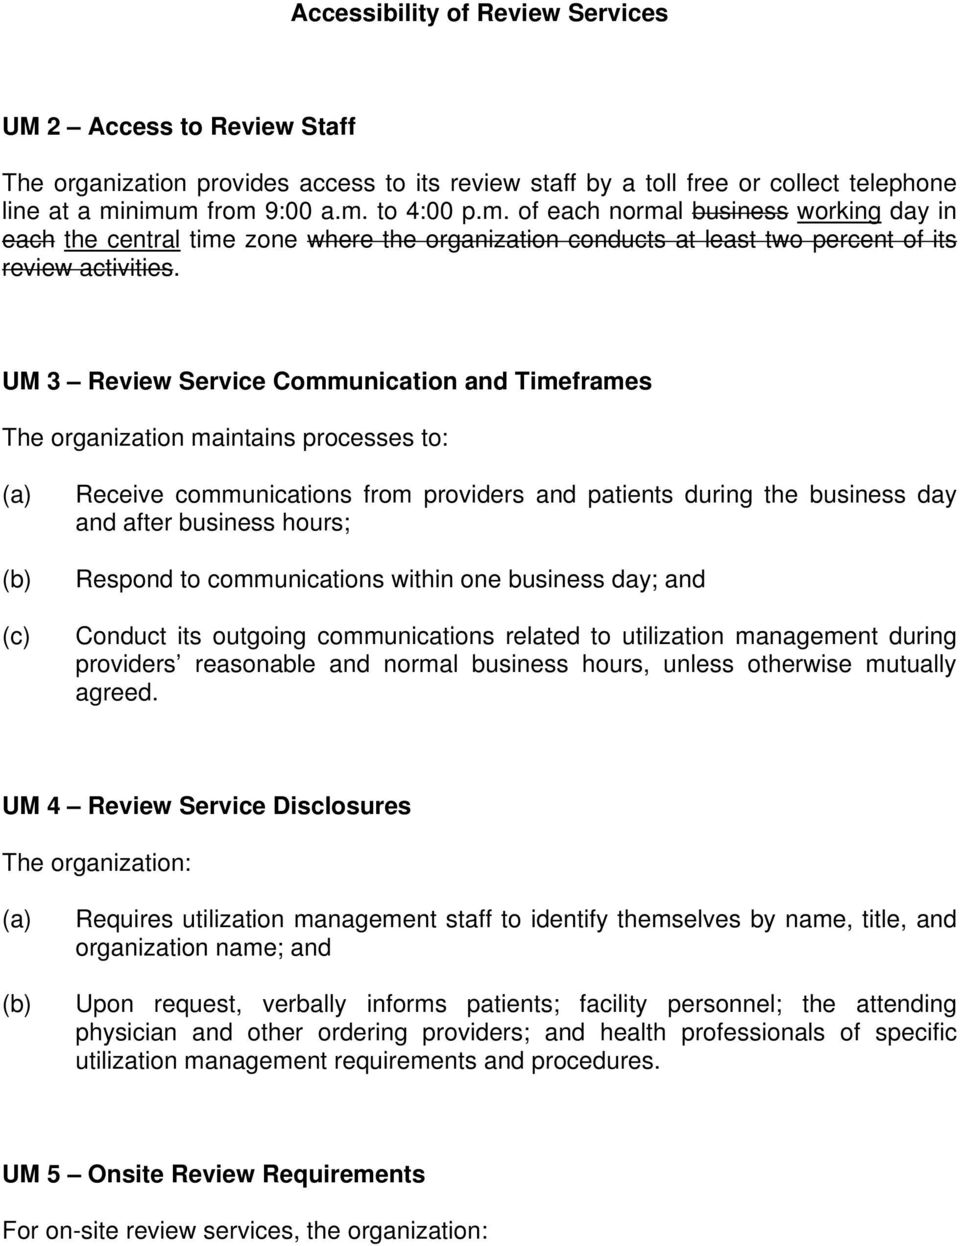 UM 3 Review Service Communication and Timeframes The organization maintains processes to: Receive communications from providers and patients during the business day and after business hours; Respond